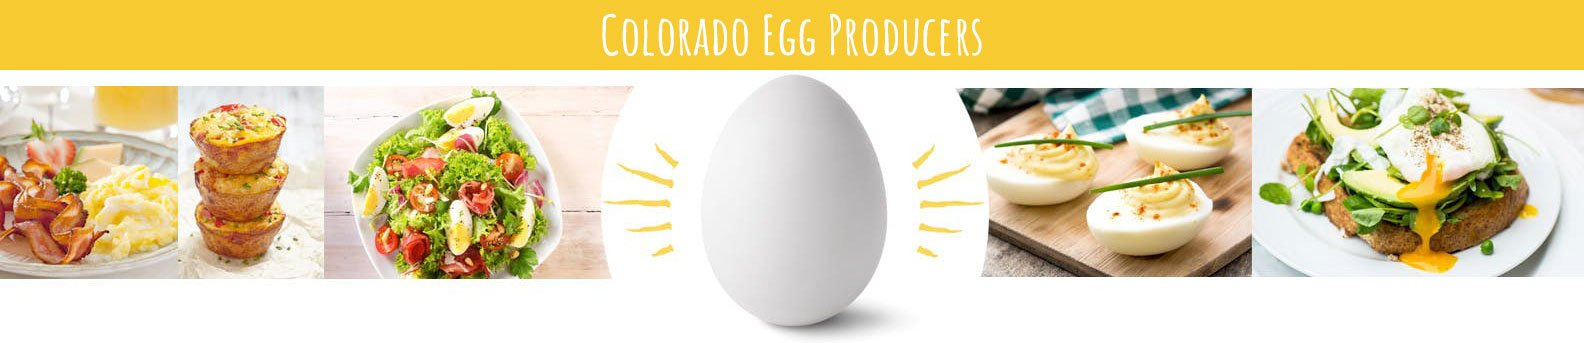 Colorado Egg Producers- Cage Free Eggs, Easter Egg ideas home projects, Healthy Egg Menus, Colorado Eggs